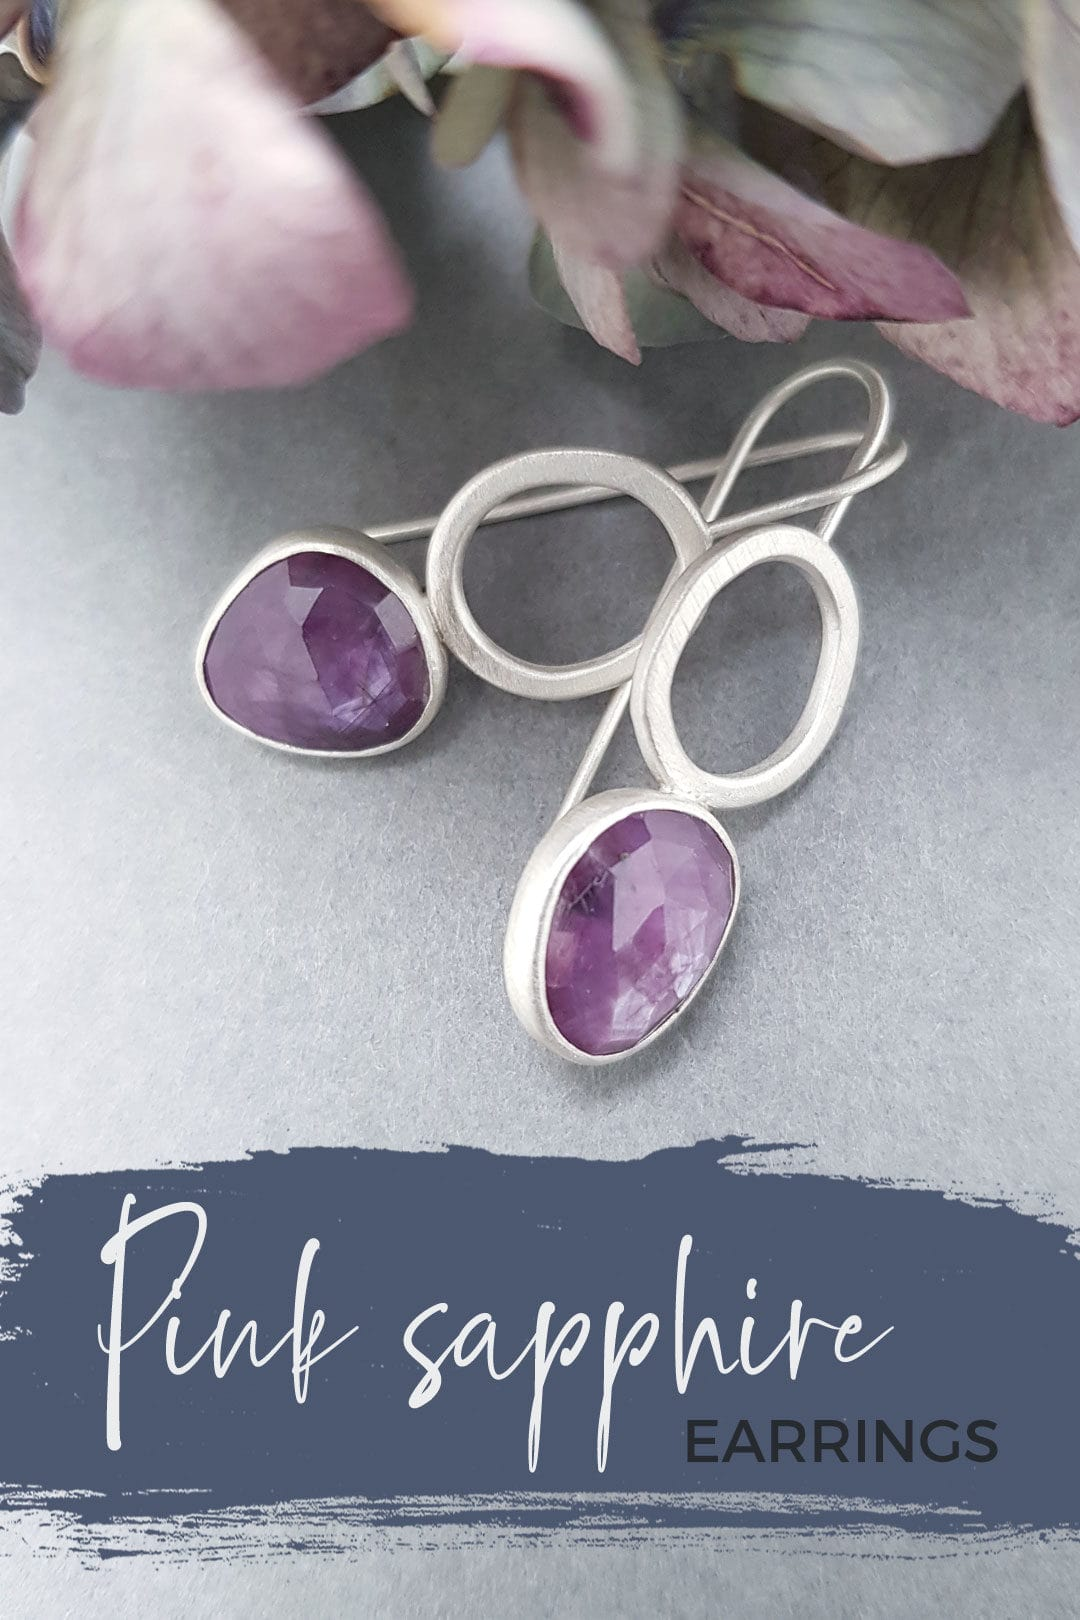 Pink sapphire earring exclusive!